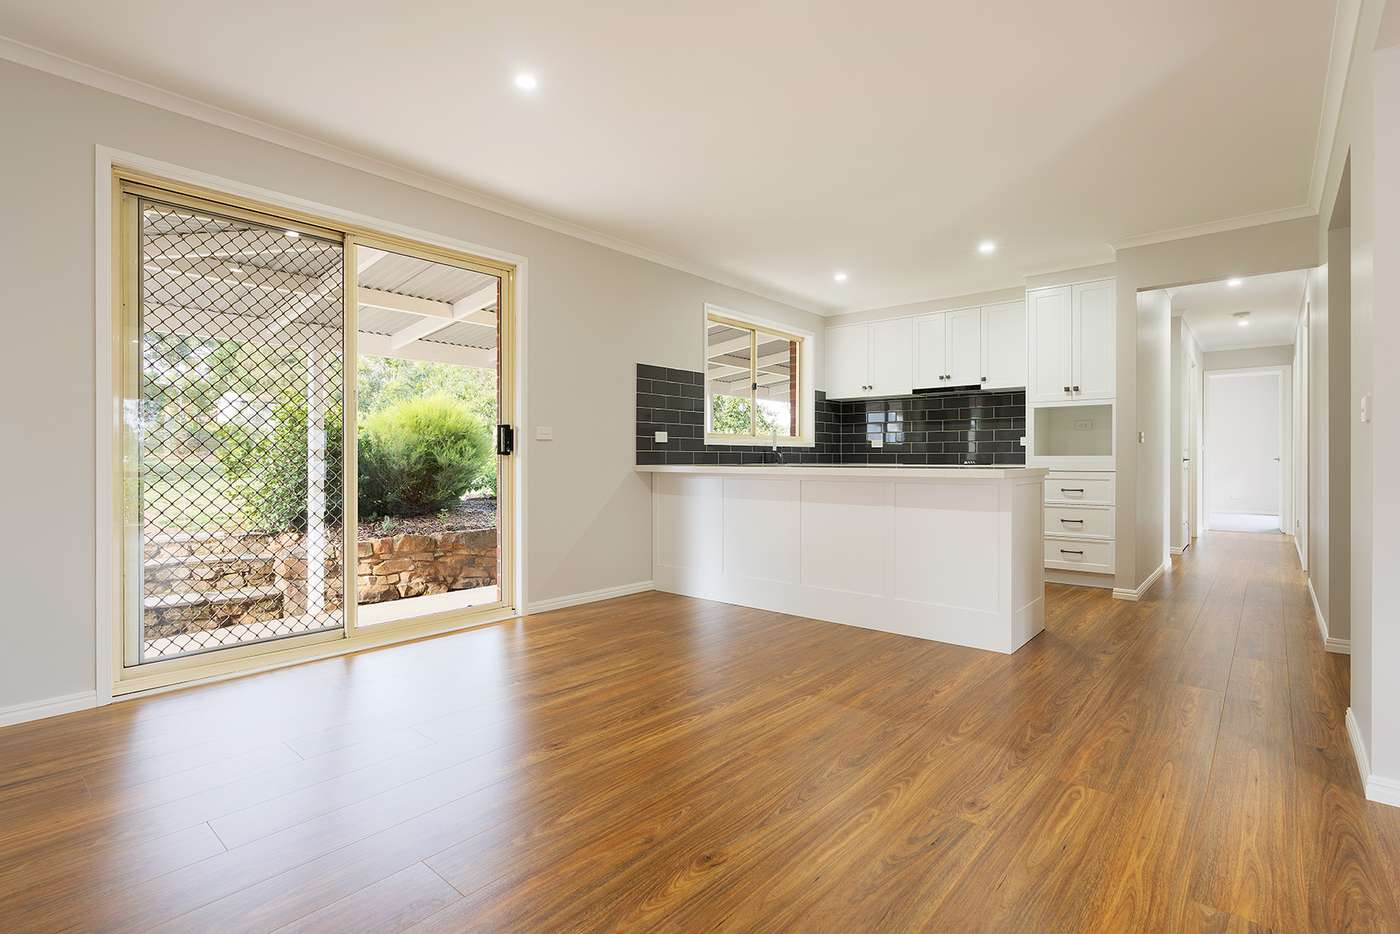 Fifth view of Homely house listing, 42 Fryers Street, Guildford VIC 3451